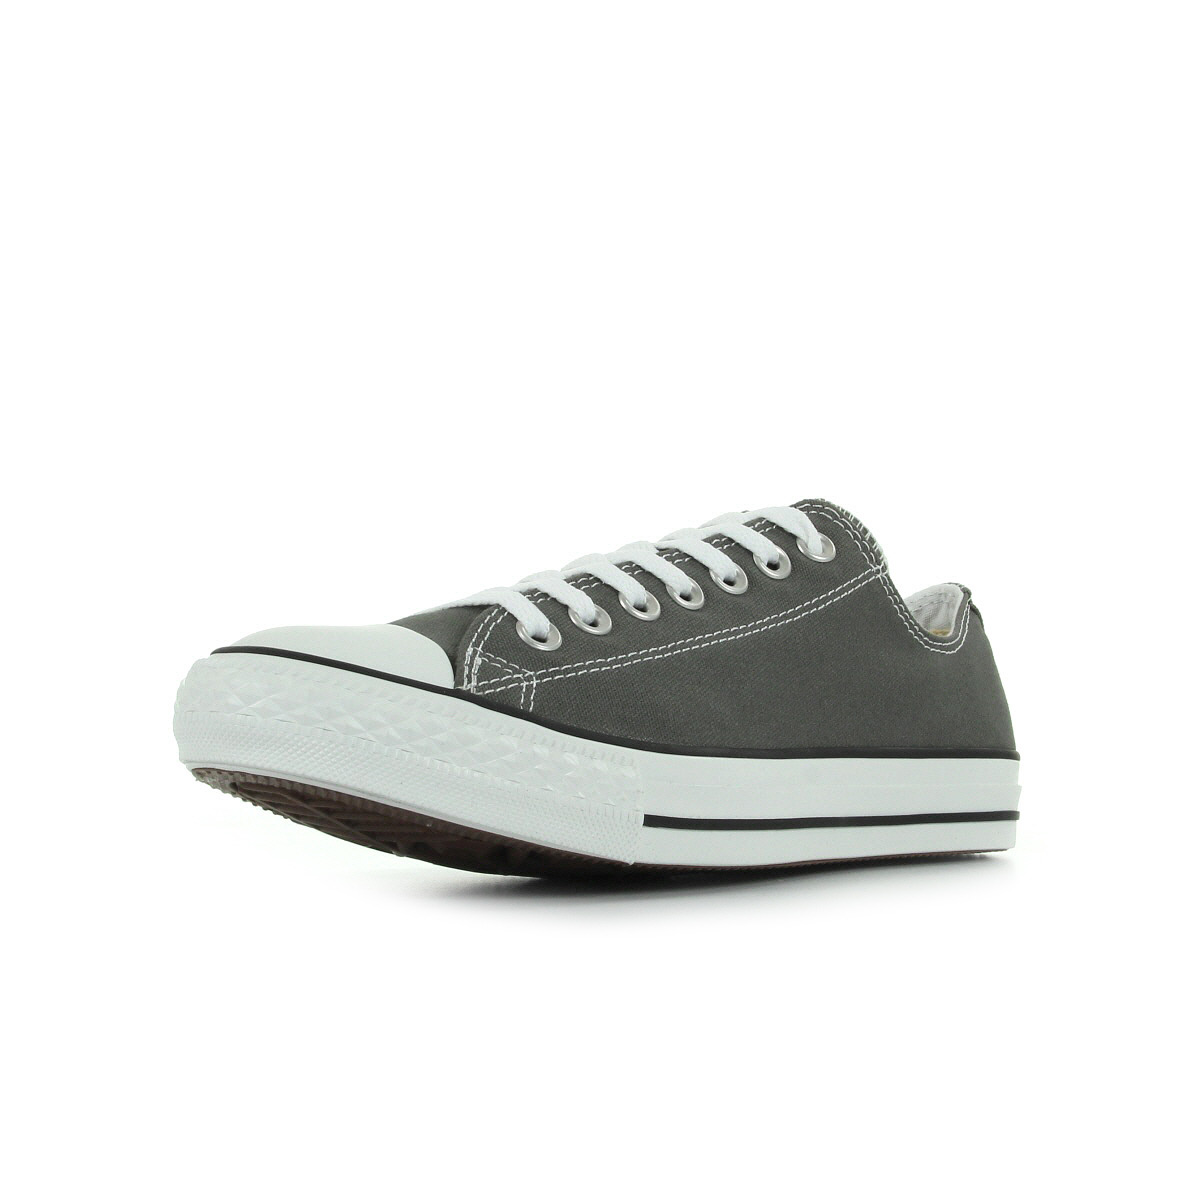 converse femme gris anthracite